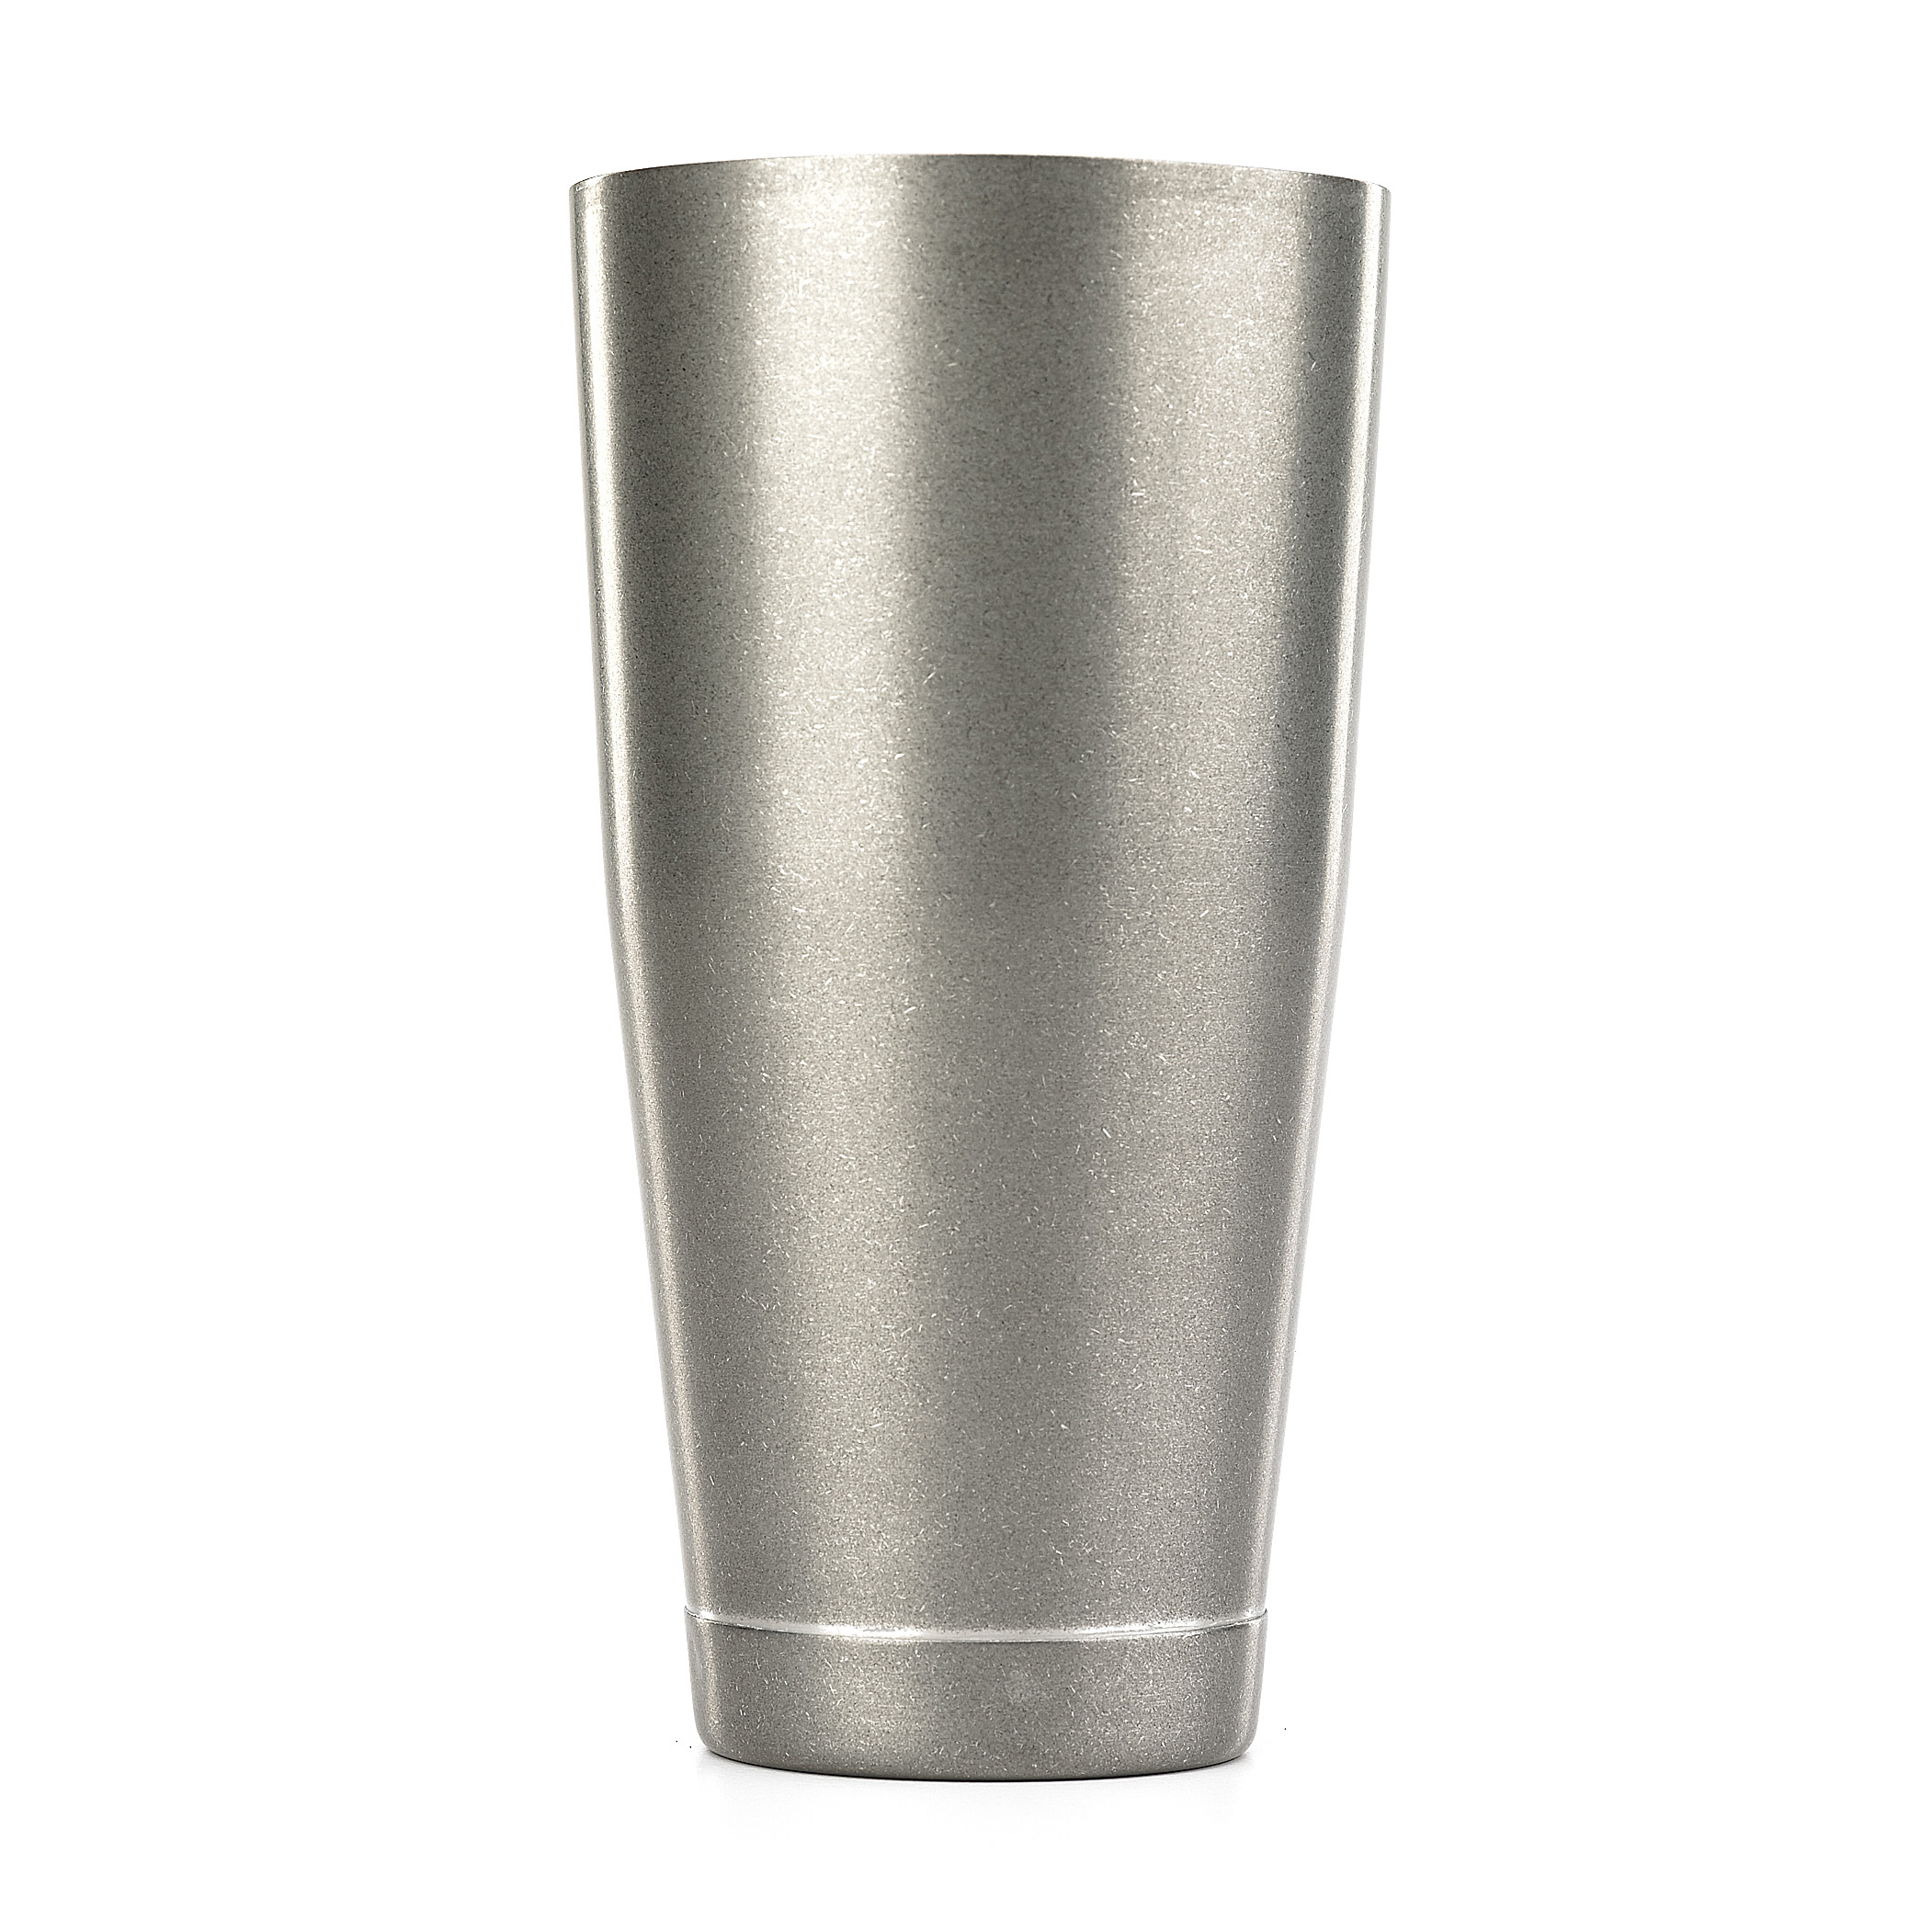 Mercer Culinary M37008VN bar cocktail shaker